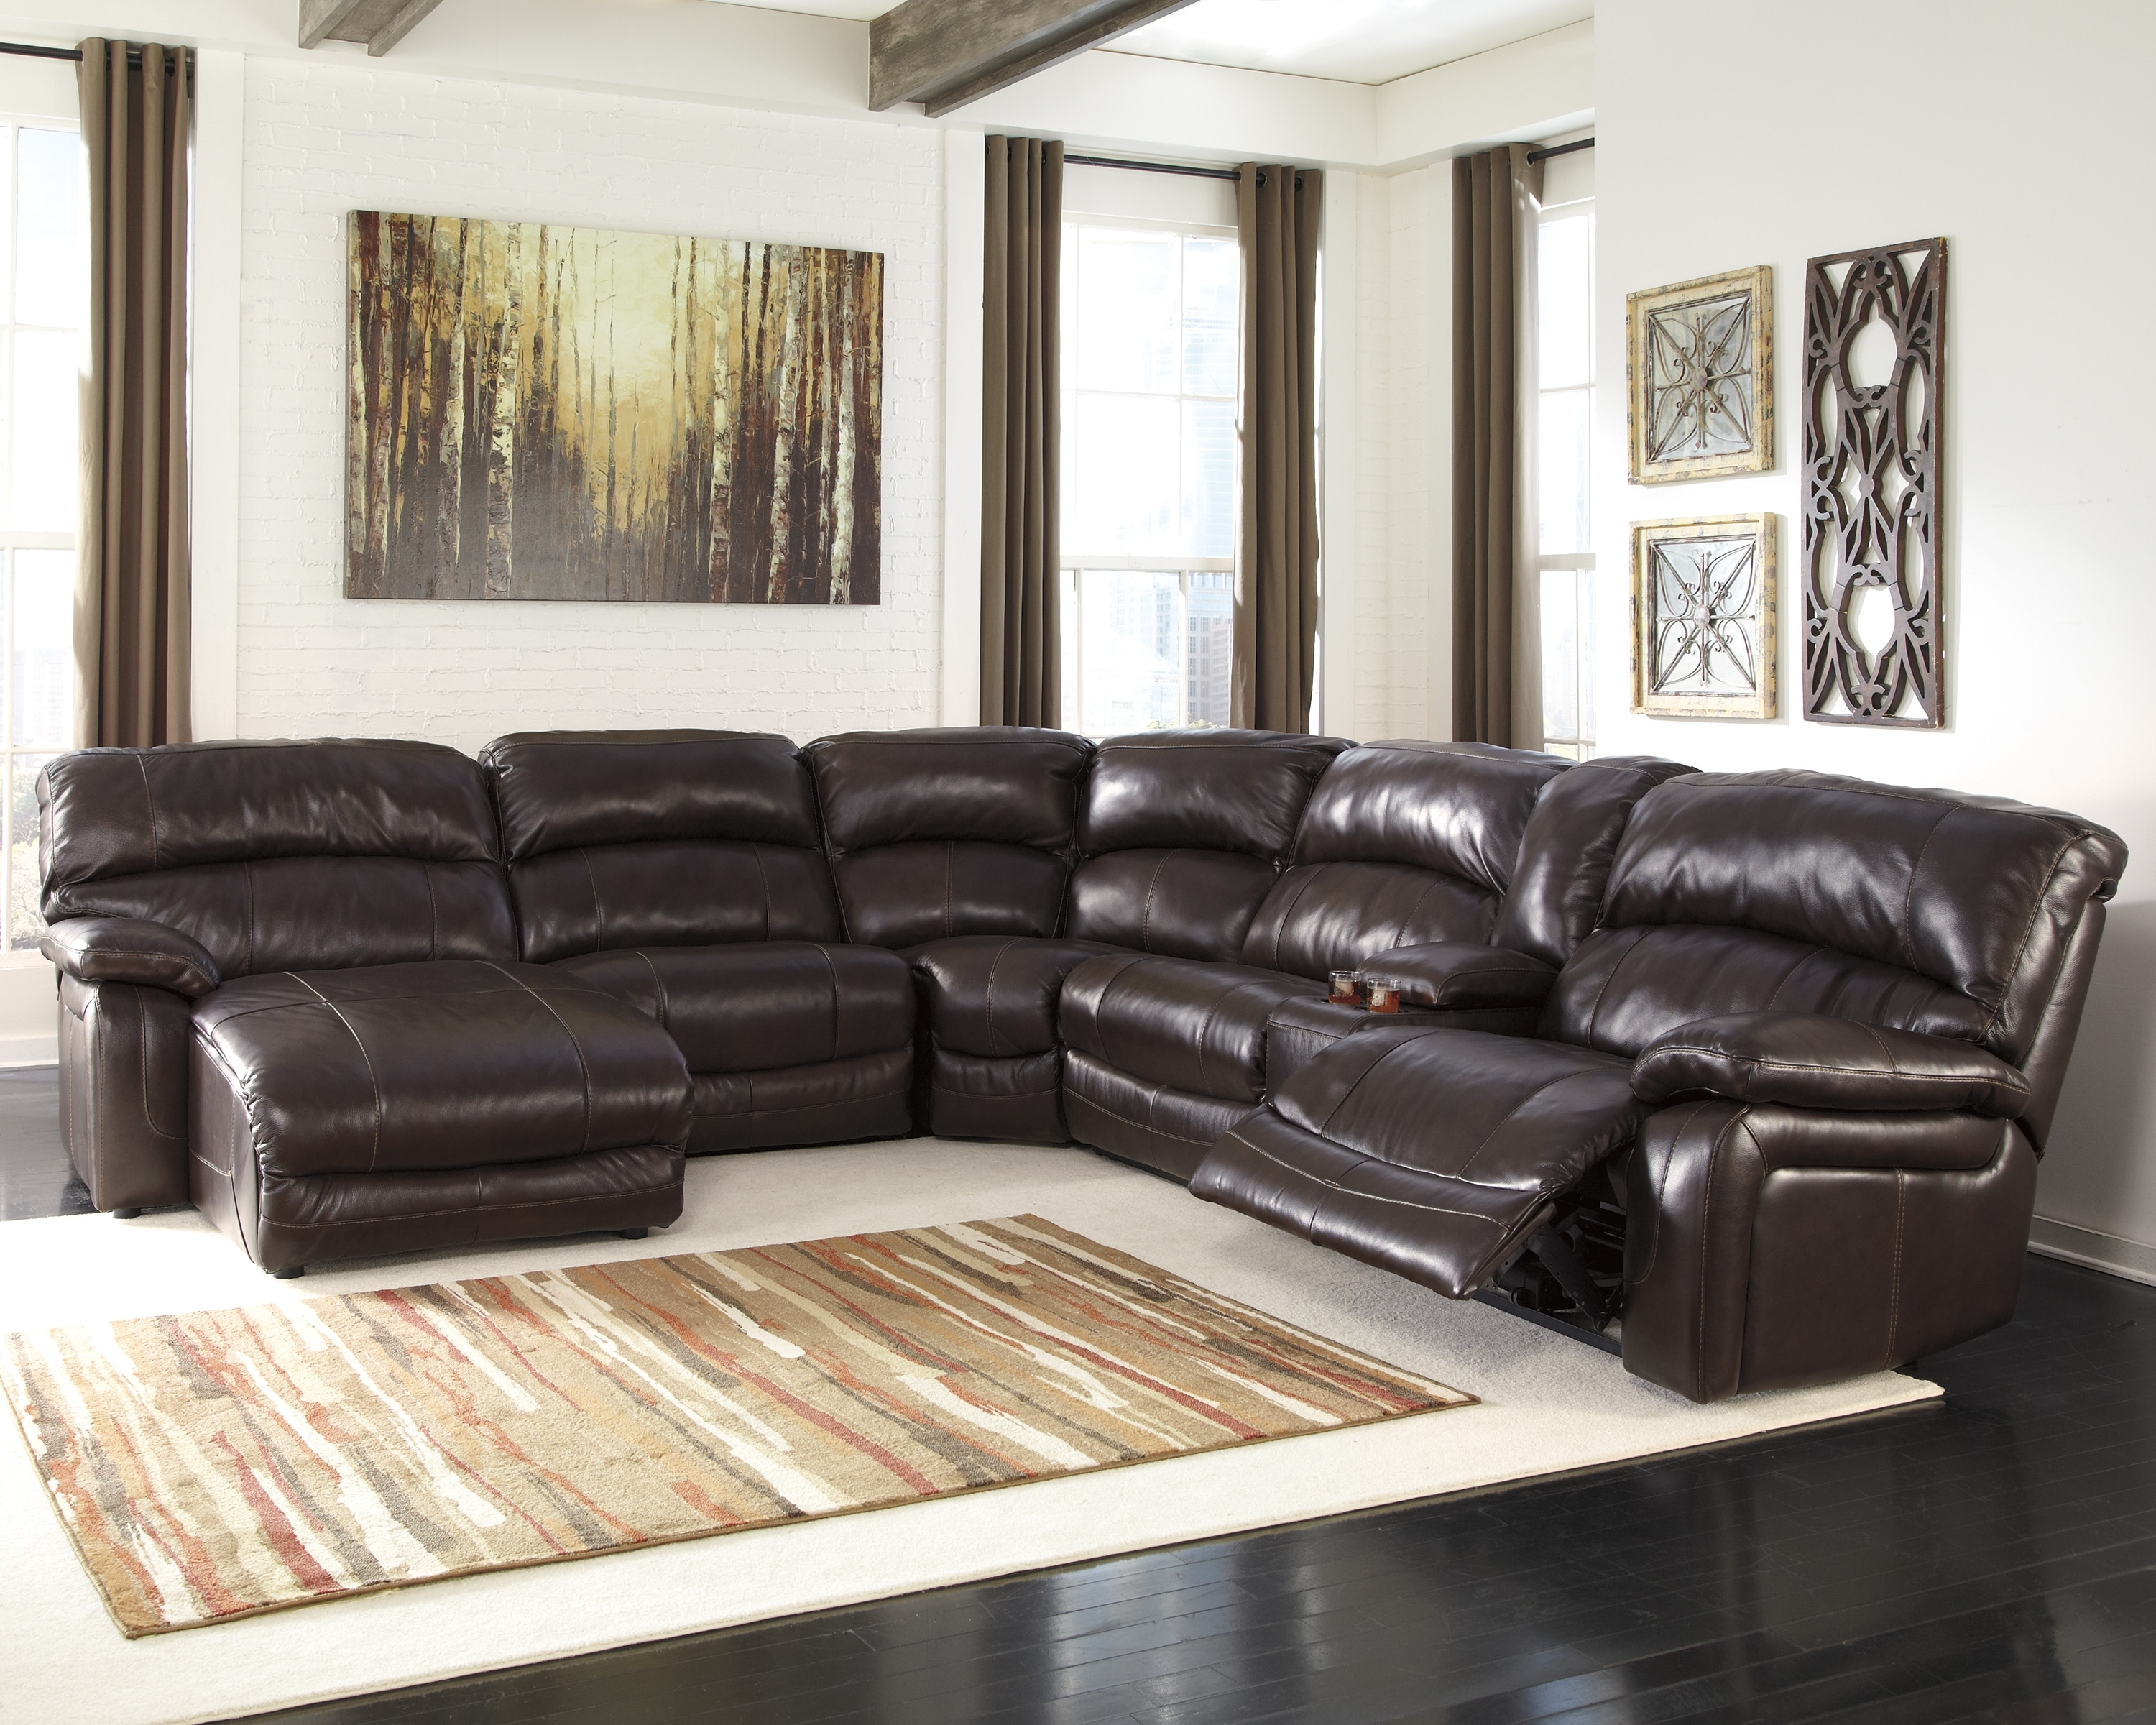 Cheap Sectional Inside Most Up To Date Sectional Sofas At Raymour And Flanigan (View 8 of 20)